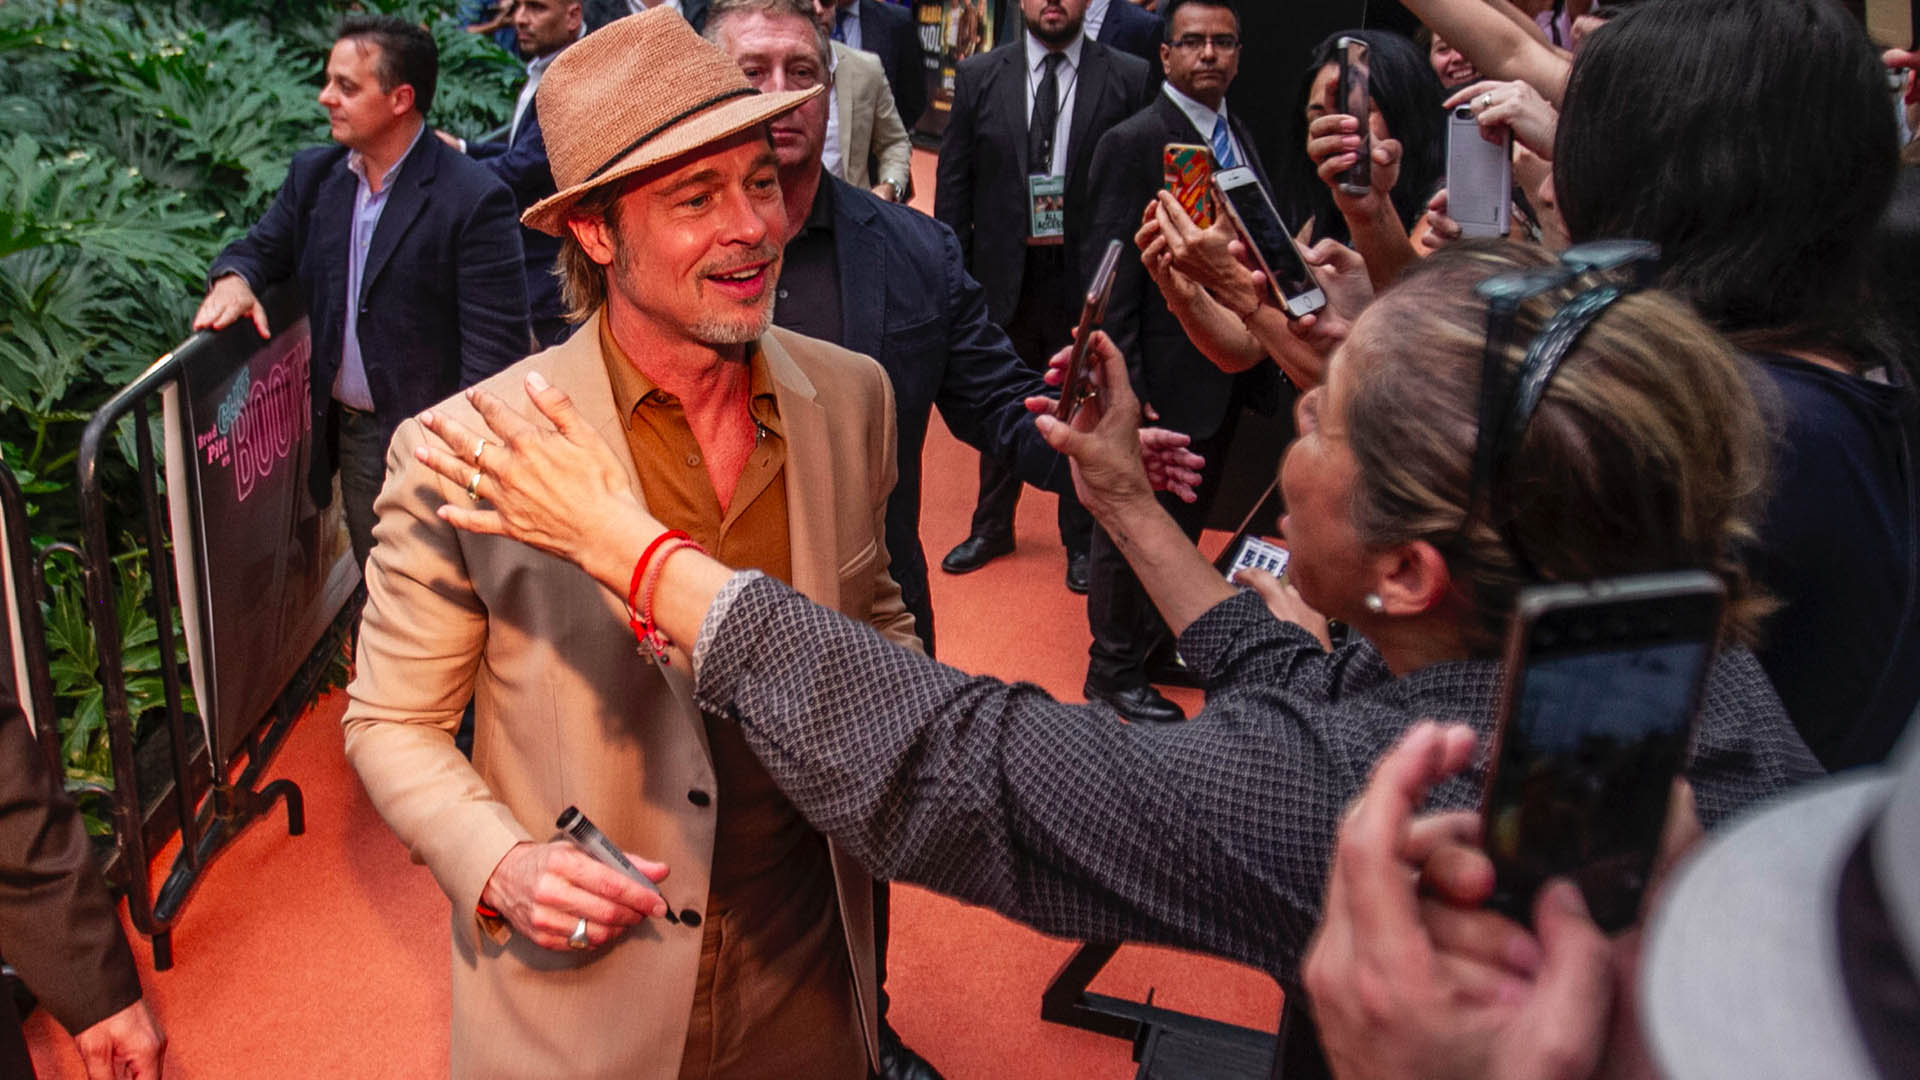 Brad Pitt Once Upon a Time in Hollywood Toreo